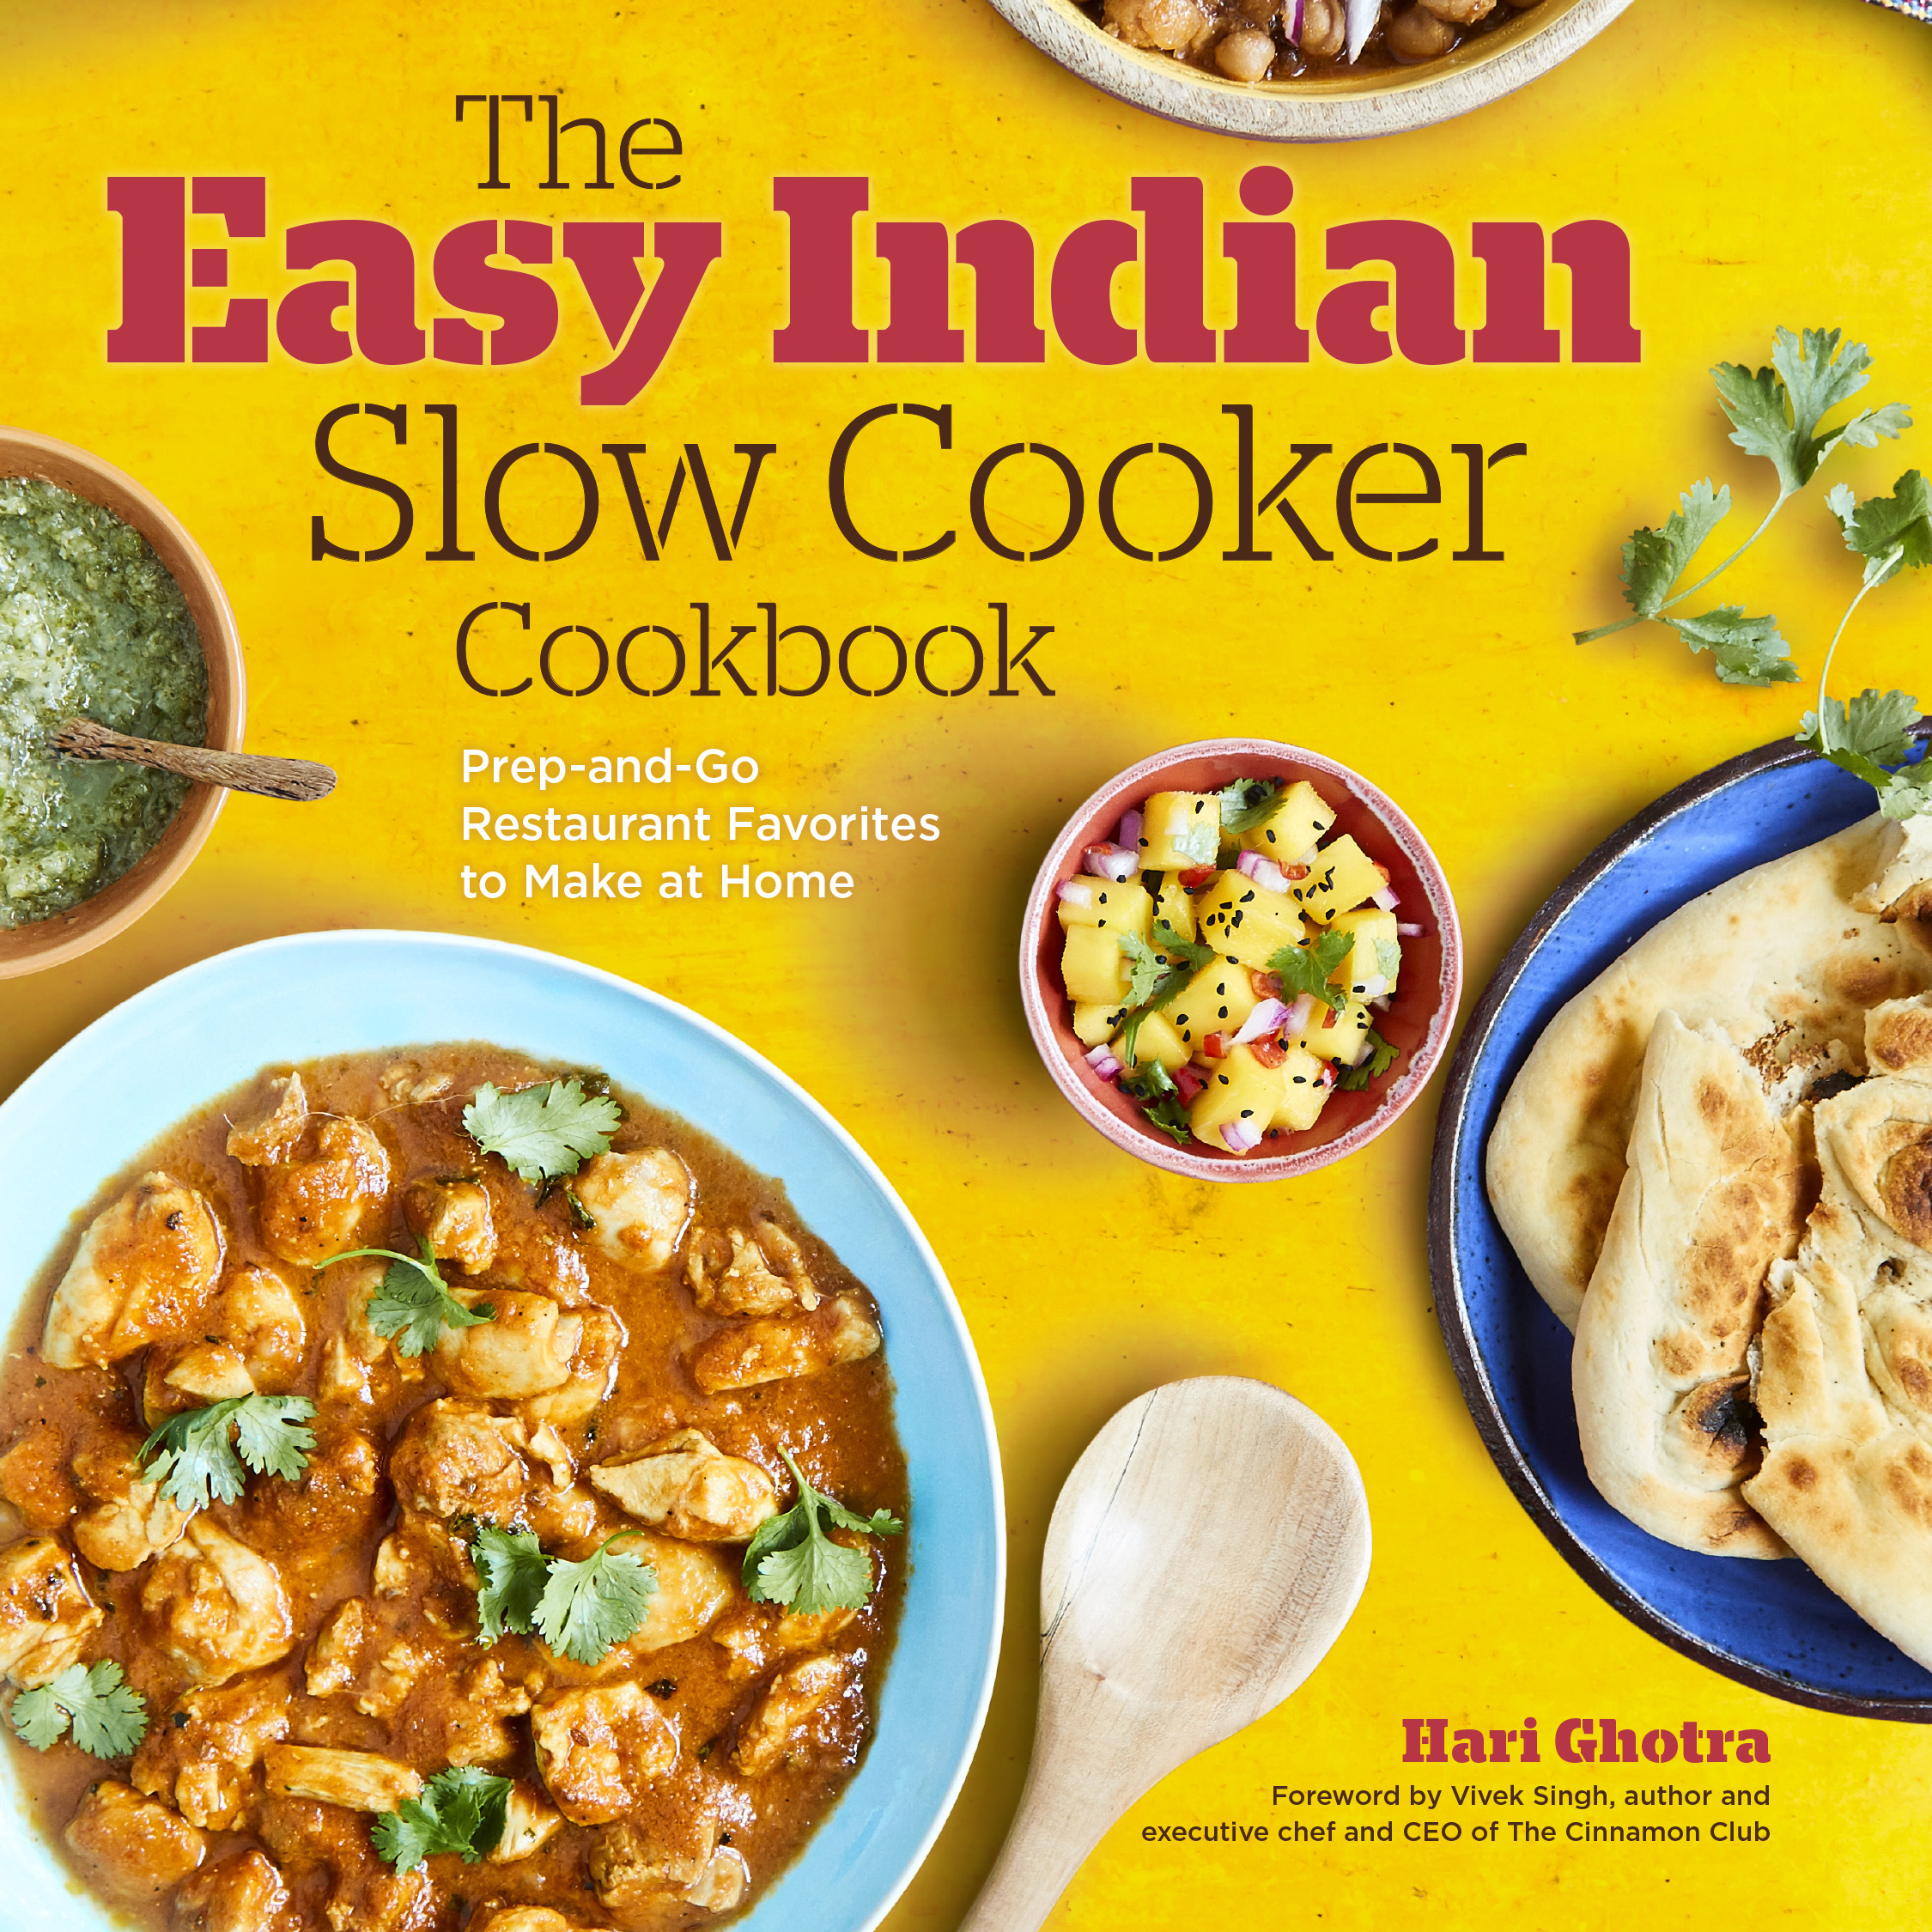 My New Cookbook: The Easy Indian Slow Cooker Cookbook